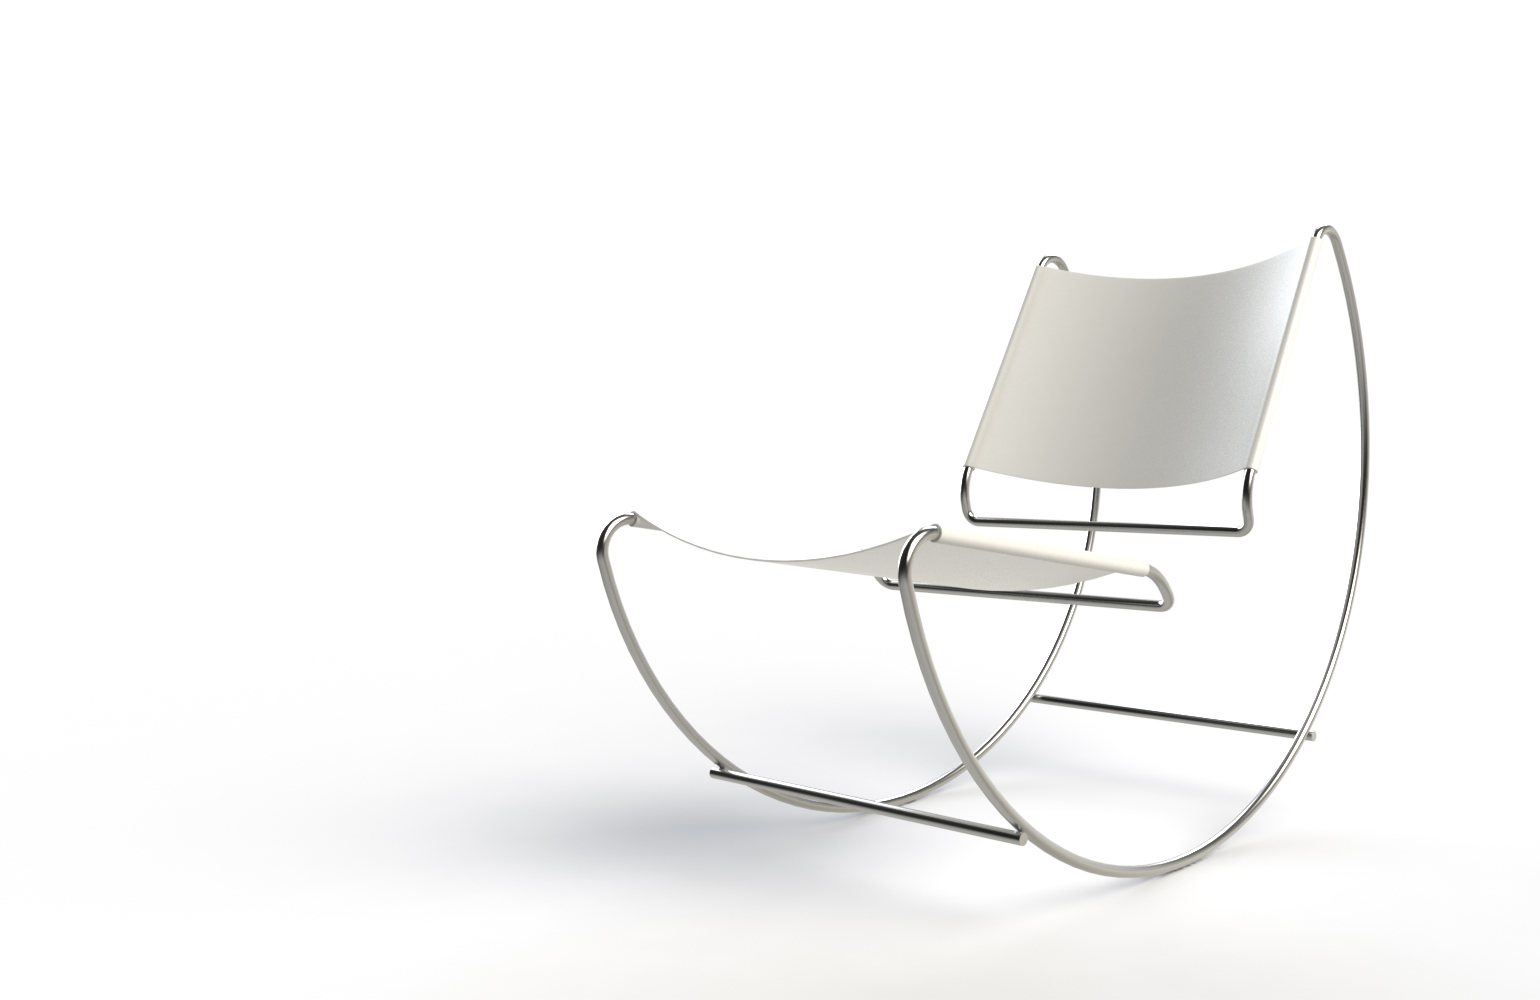 """Inspired by Marcel Breuer's Wassily Chair, but disappointed with the availability of equally iconic furnishings of the same style to complete a room, we created the Nebo rocking chair.   The frame is fabricated from 3/4"""" polished stainless steel rods, to match the look of the Wassily chair, but provide greater strength than the original tubing. The seat bottom and back are the same rugged leather hide used on the Wassily chair,available in a variety of colors and patterns."""